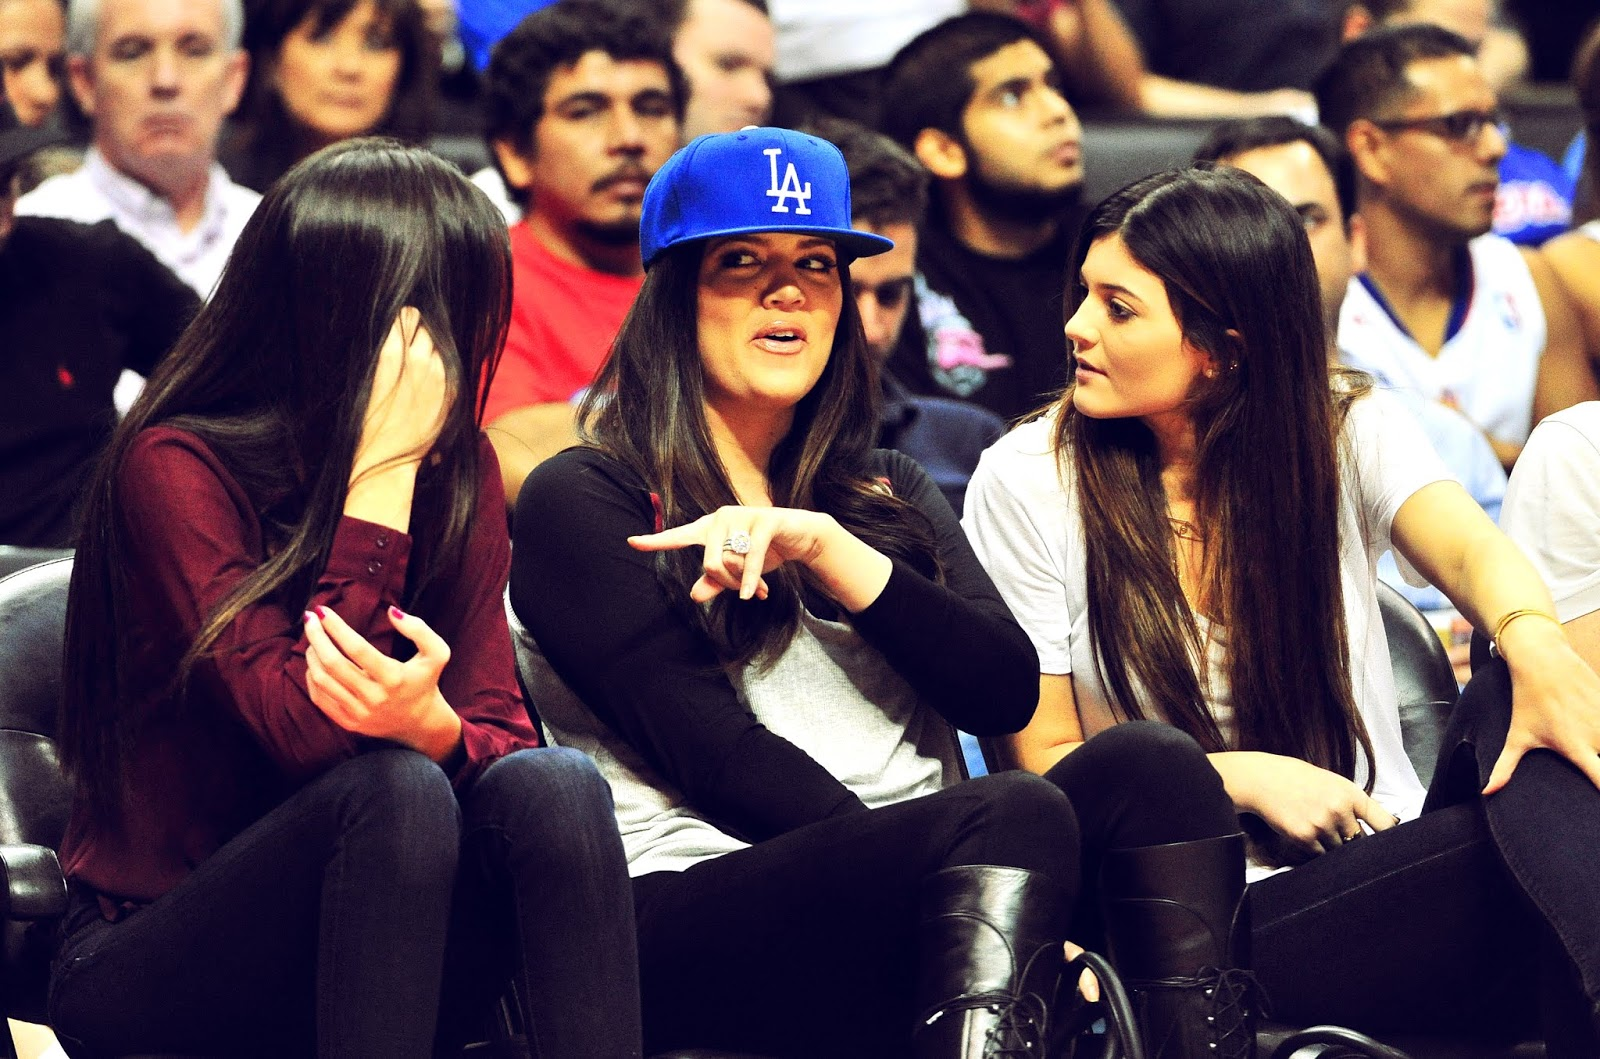 13 - Watching The Los Angeles Clippers Game on October 17, 2012